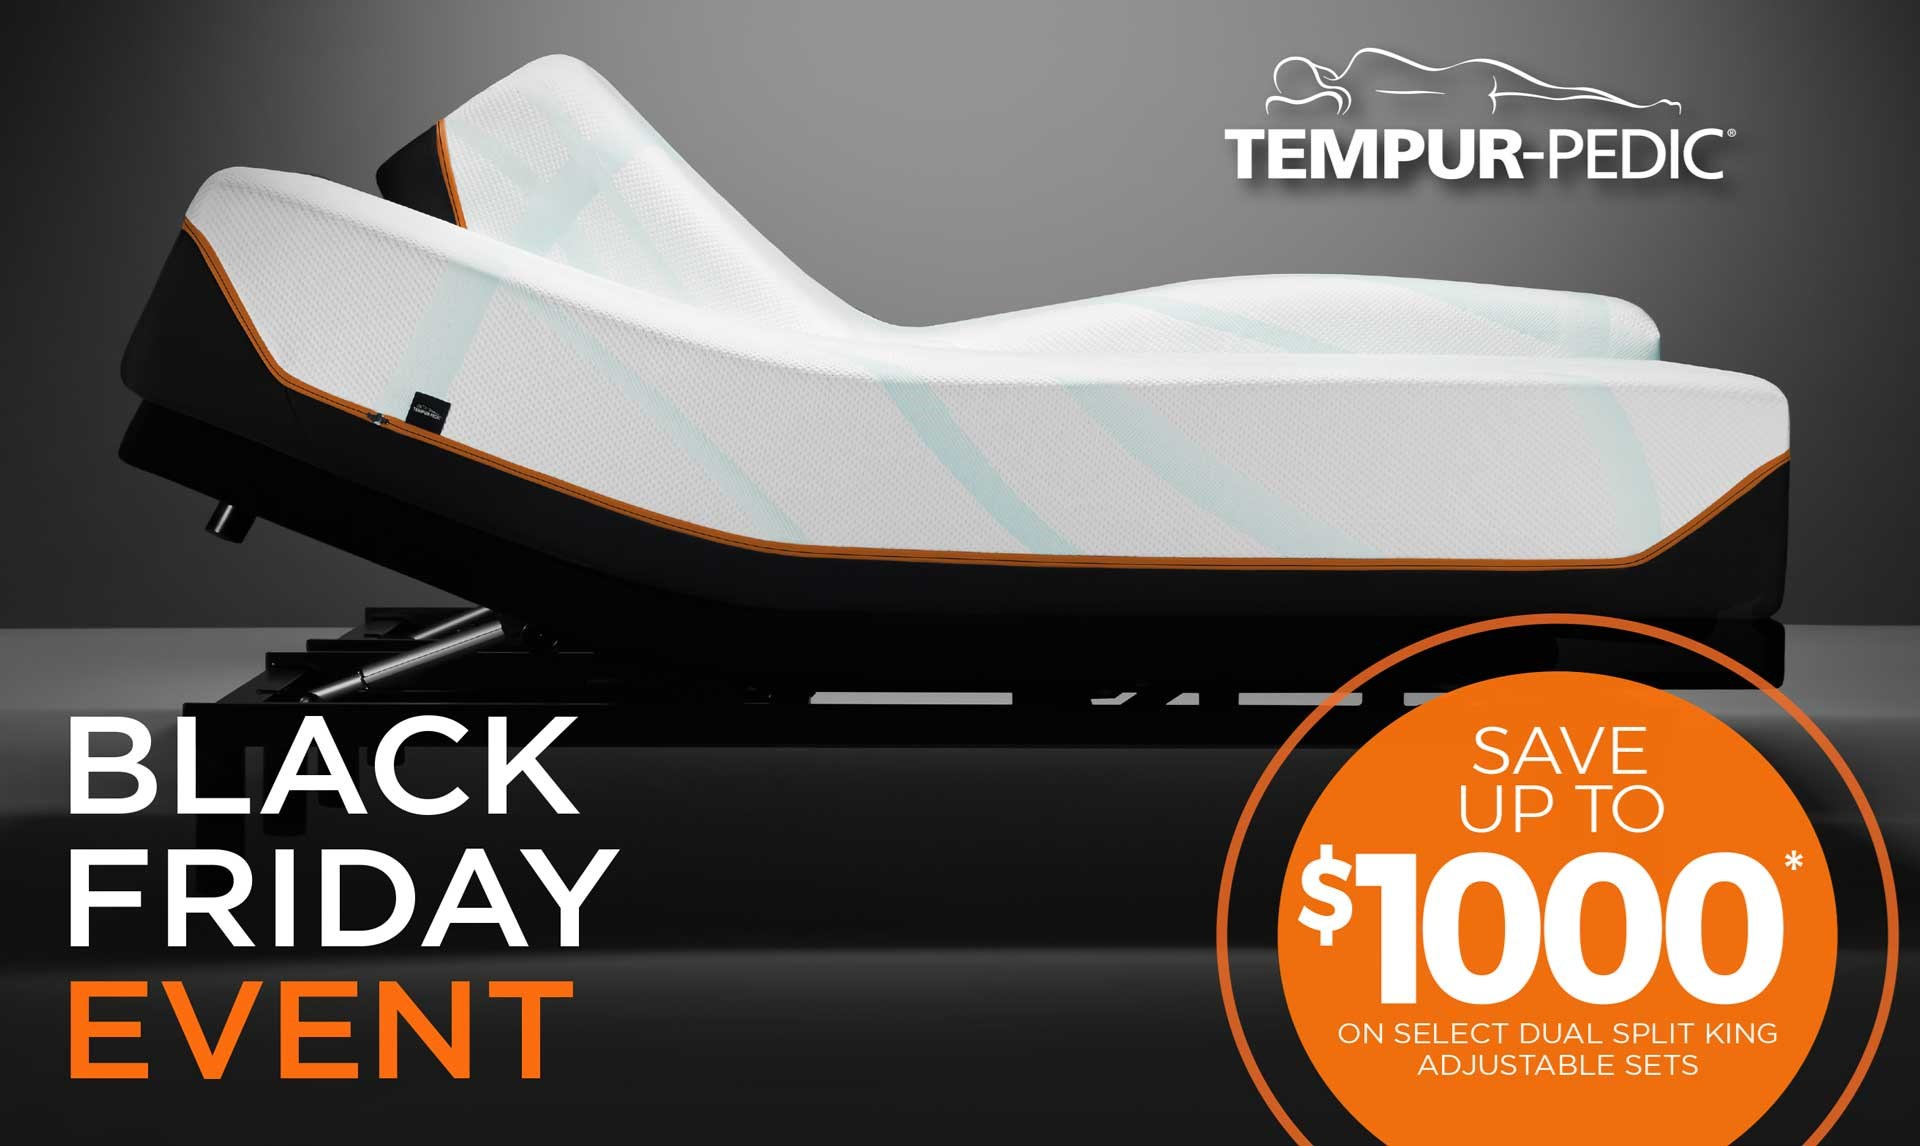 Tempurpedic Black Friday Event! Save up to a $1000 on select dual split king adjustable sets.